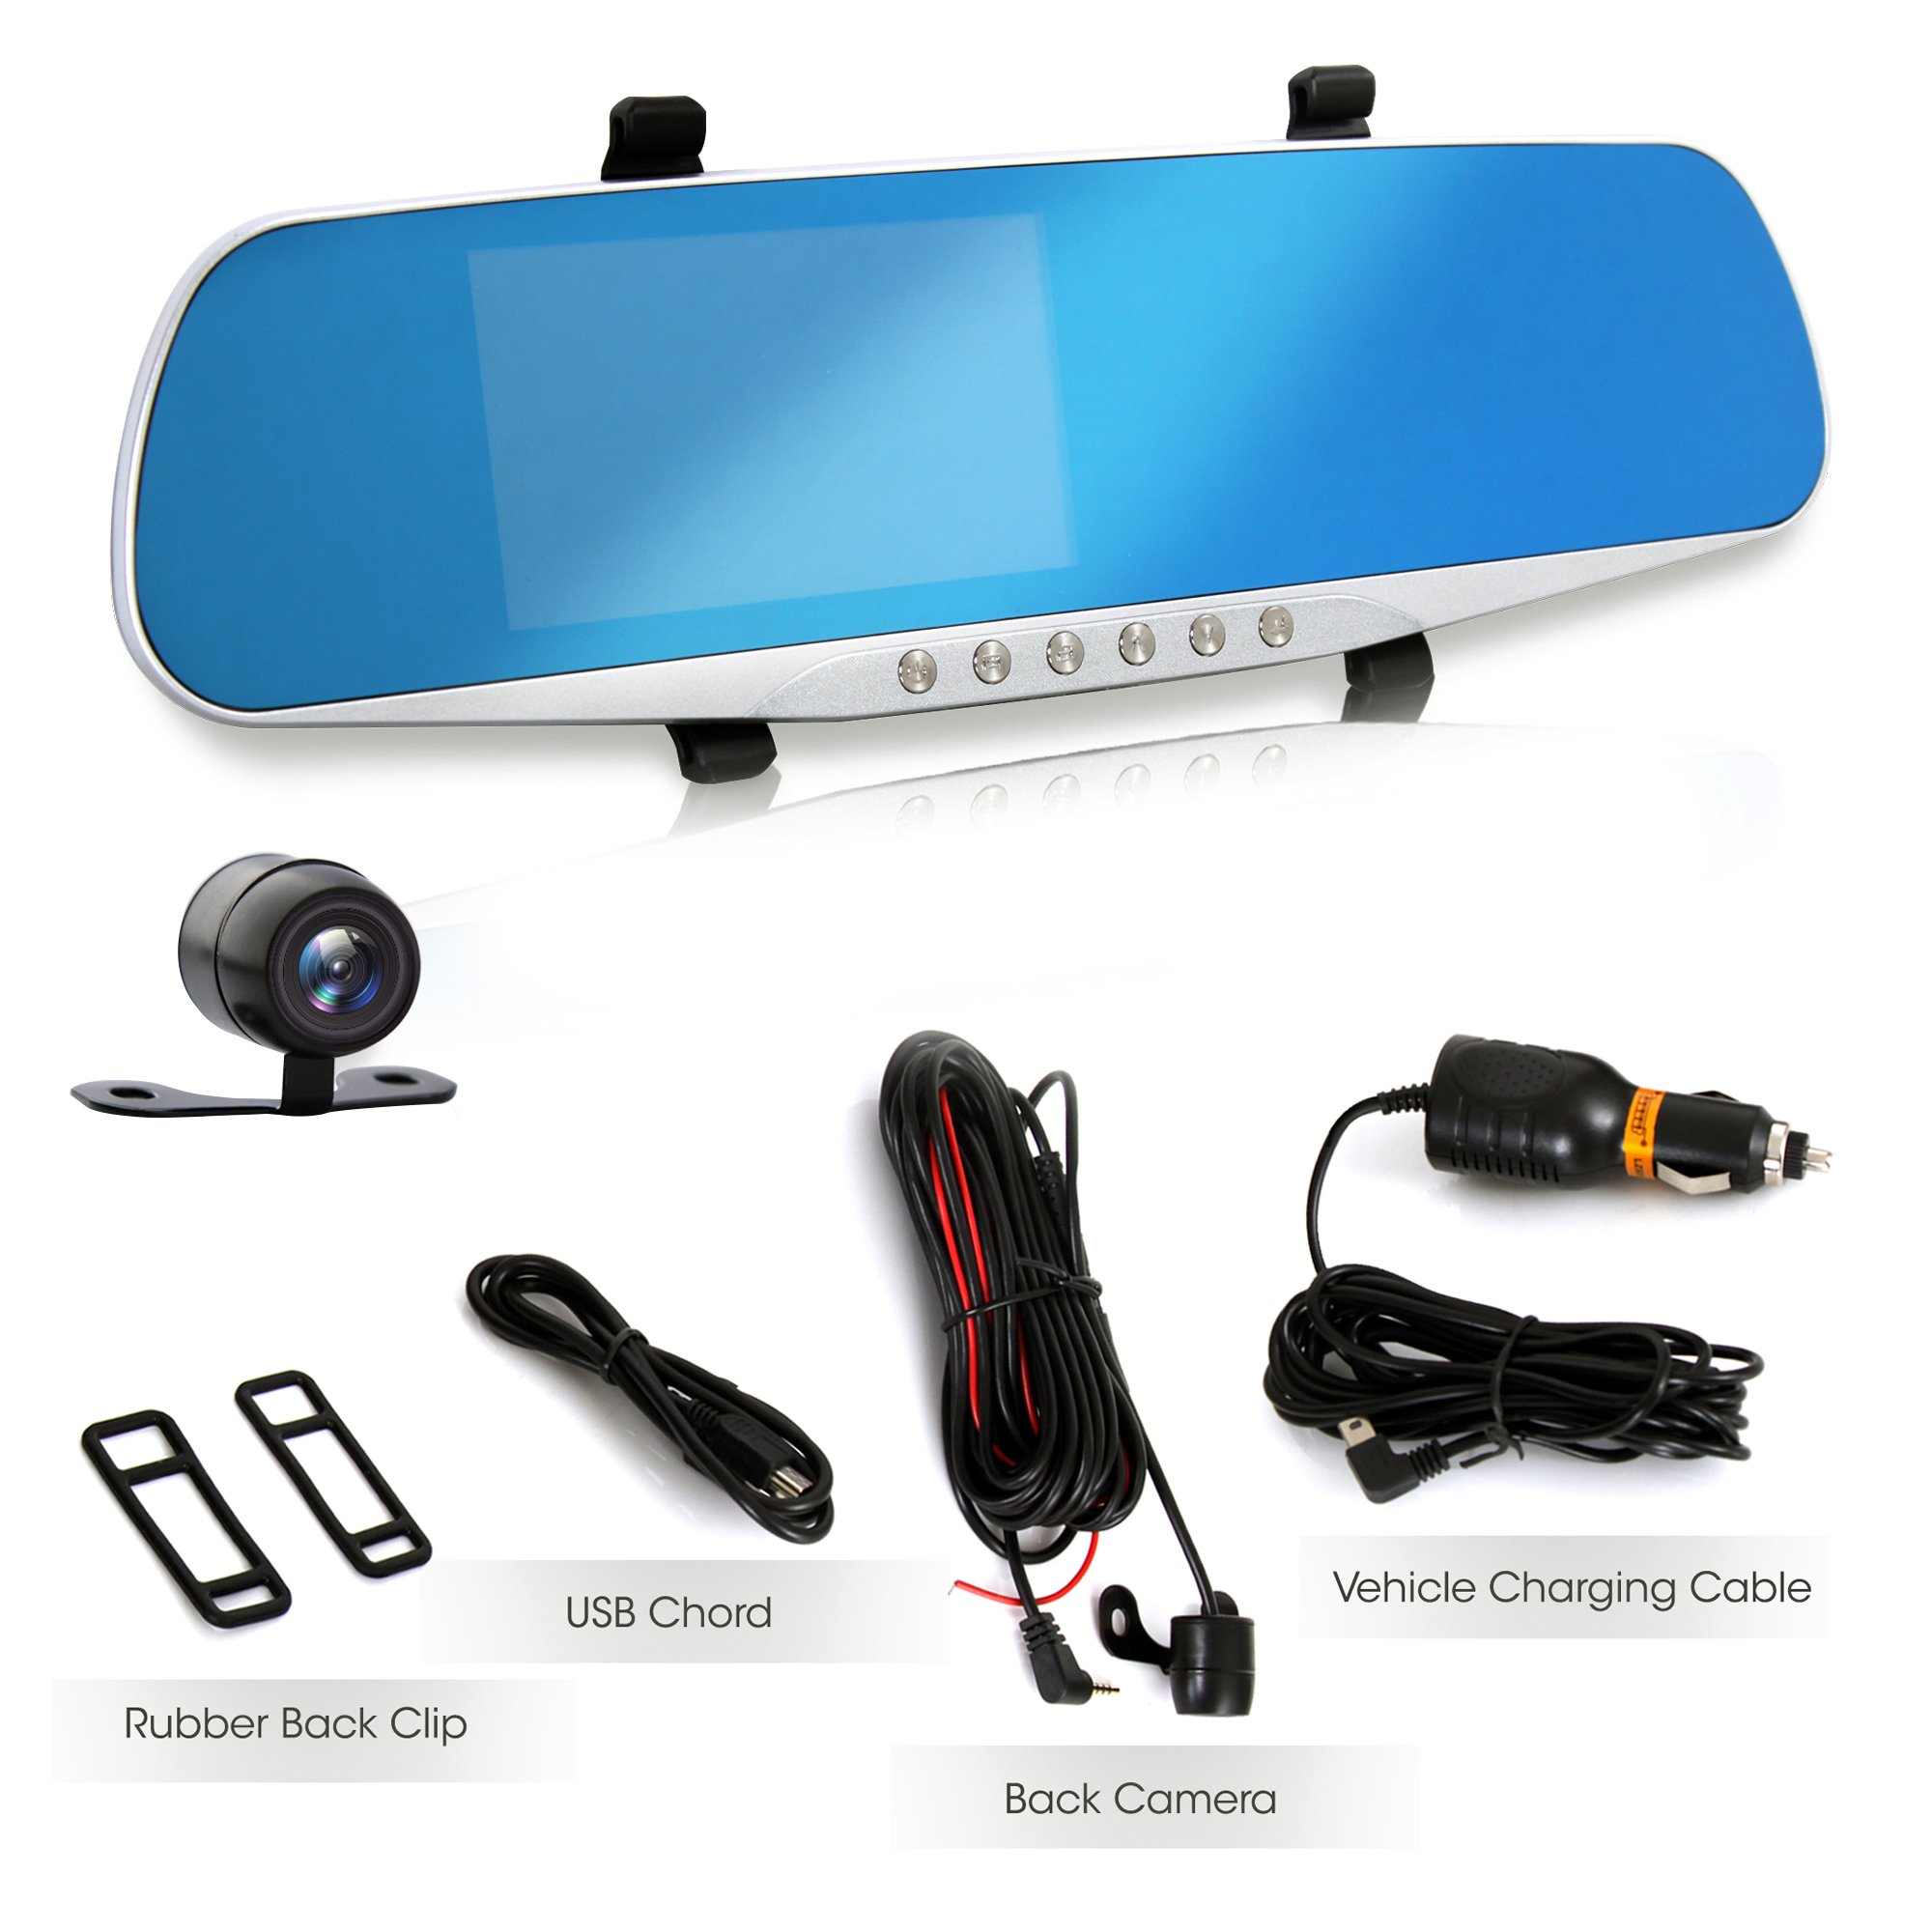 """Dash Cam Rearview Mirror Monitor - 4.3"""" DVR Rear View Dual Camera Video Recording System in Full HD 1080p w/Built in G-Sensor Motion Detect Parking Control Loop Record Support - Pyle PLCMDVR46 by Pyle (Image #2)"""